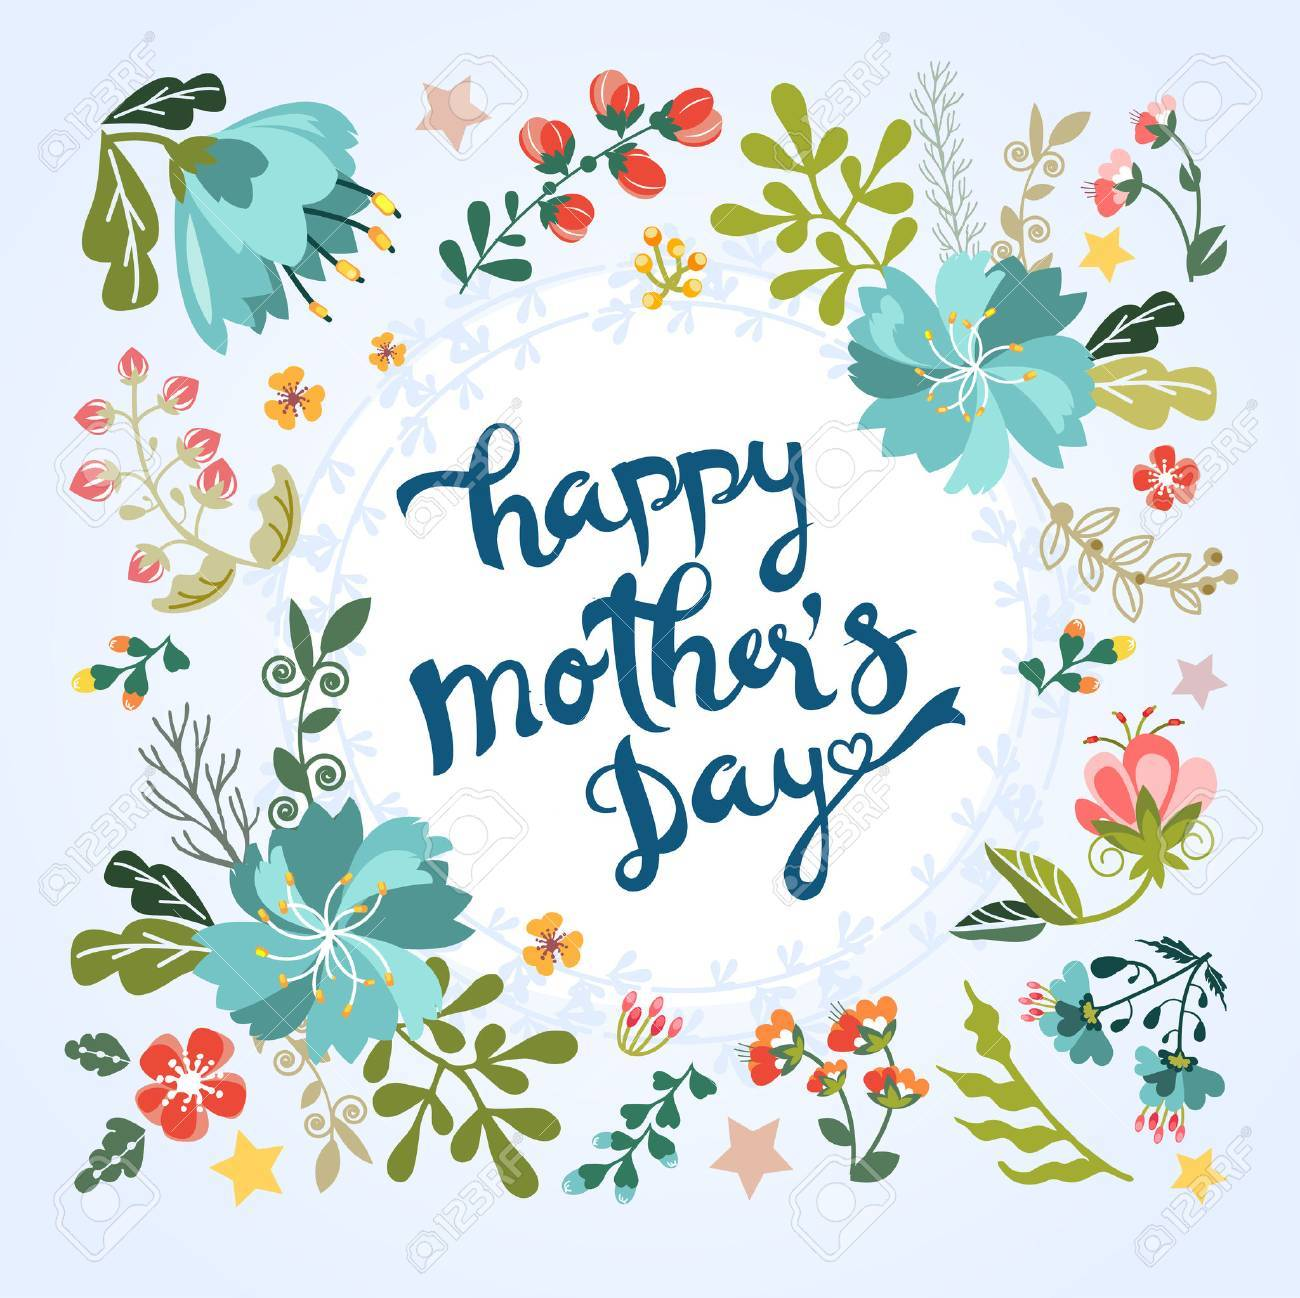 Happy Mothers Day Floral Greeting Royalty Free Cliparts Vectors